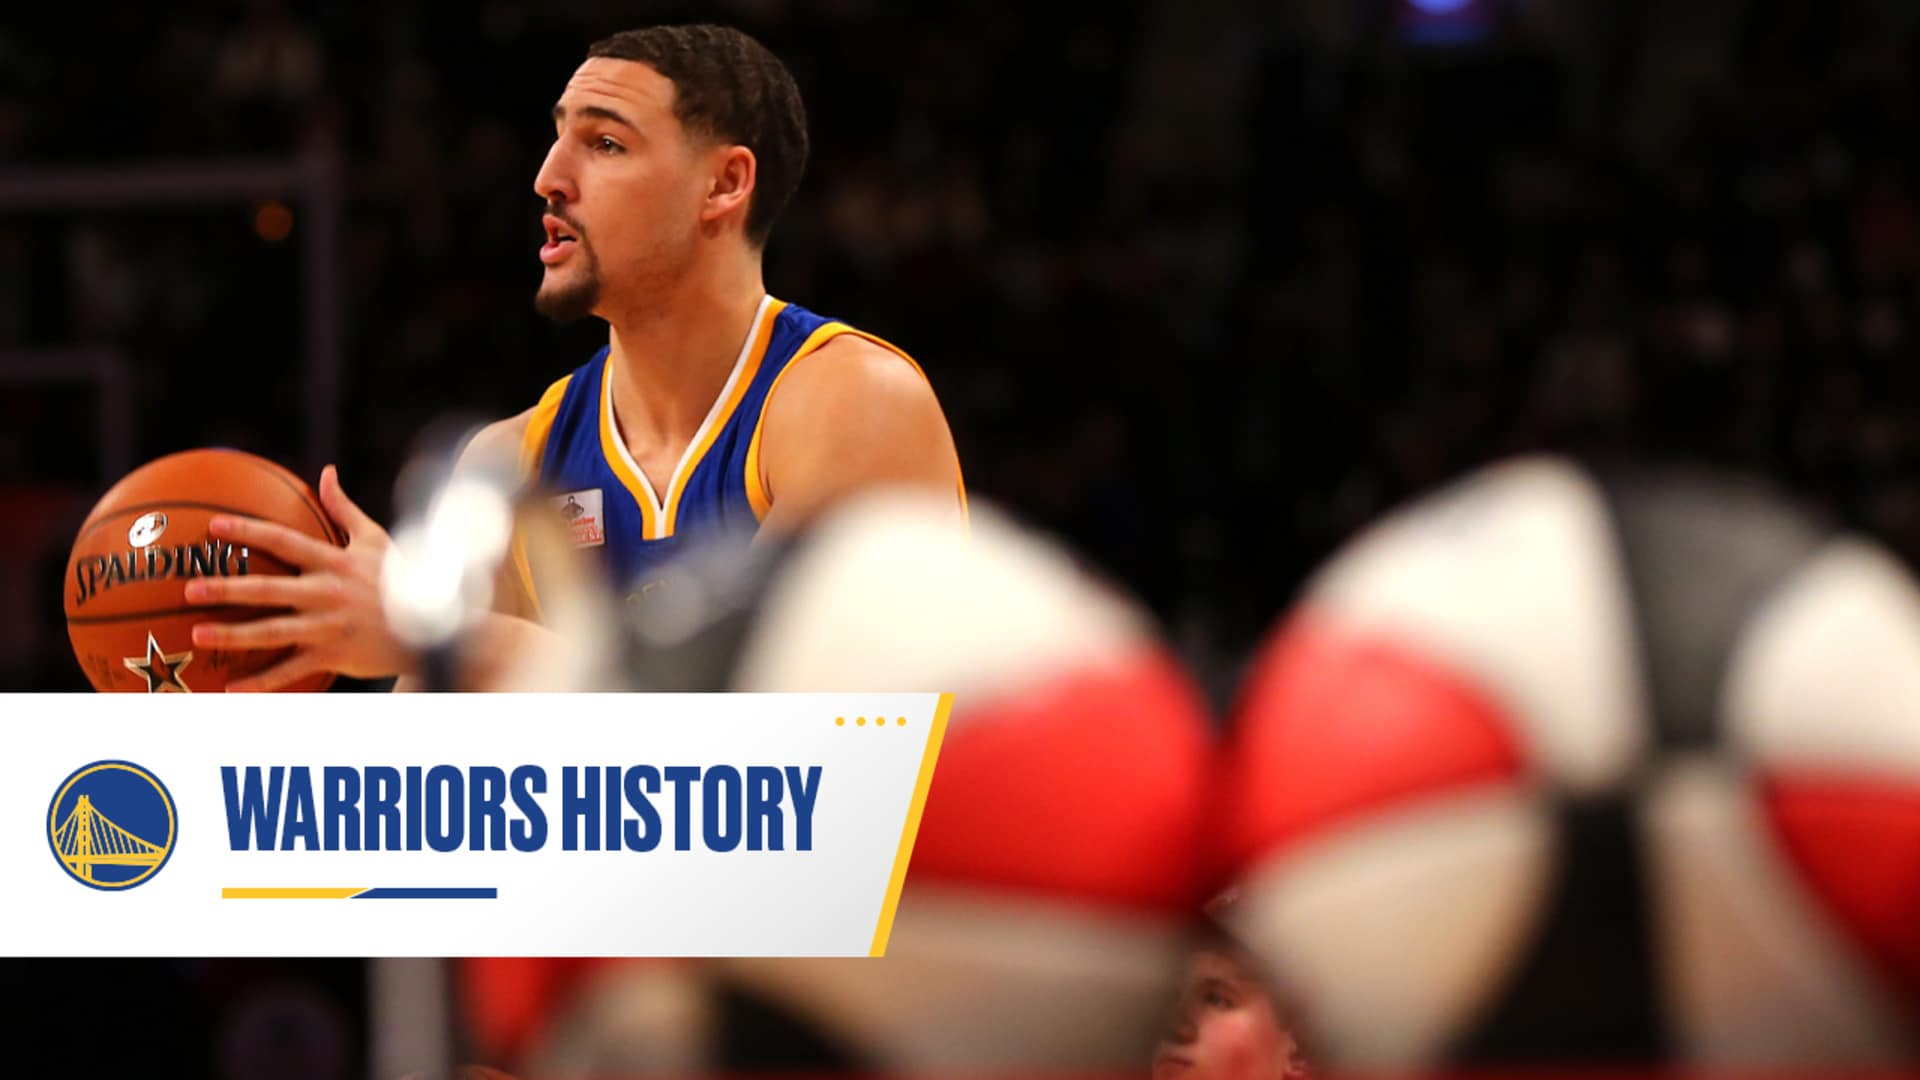 On This Date in Warriors History: Klay Thompson Wins 3-Point Contest